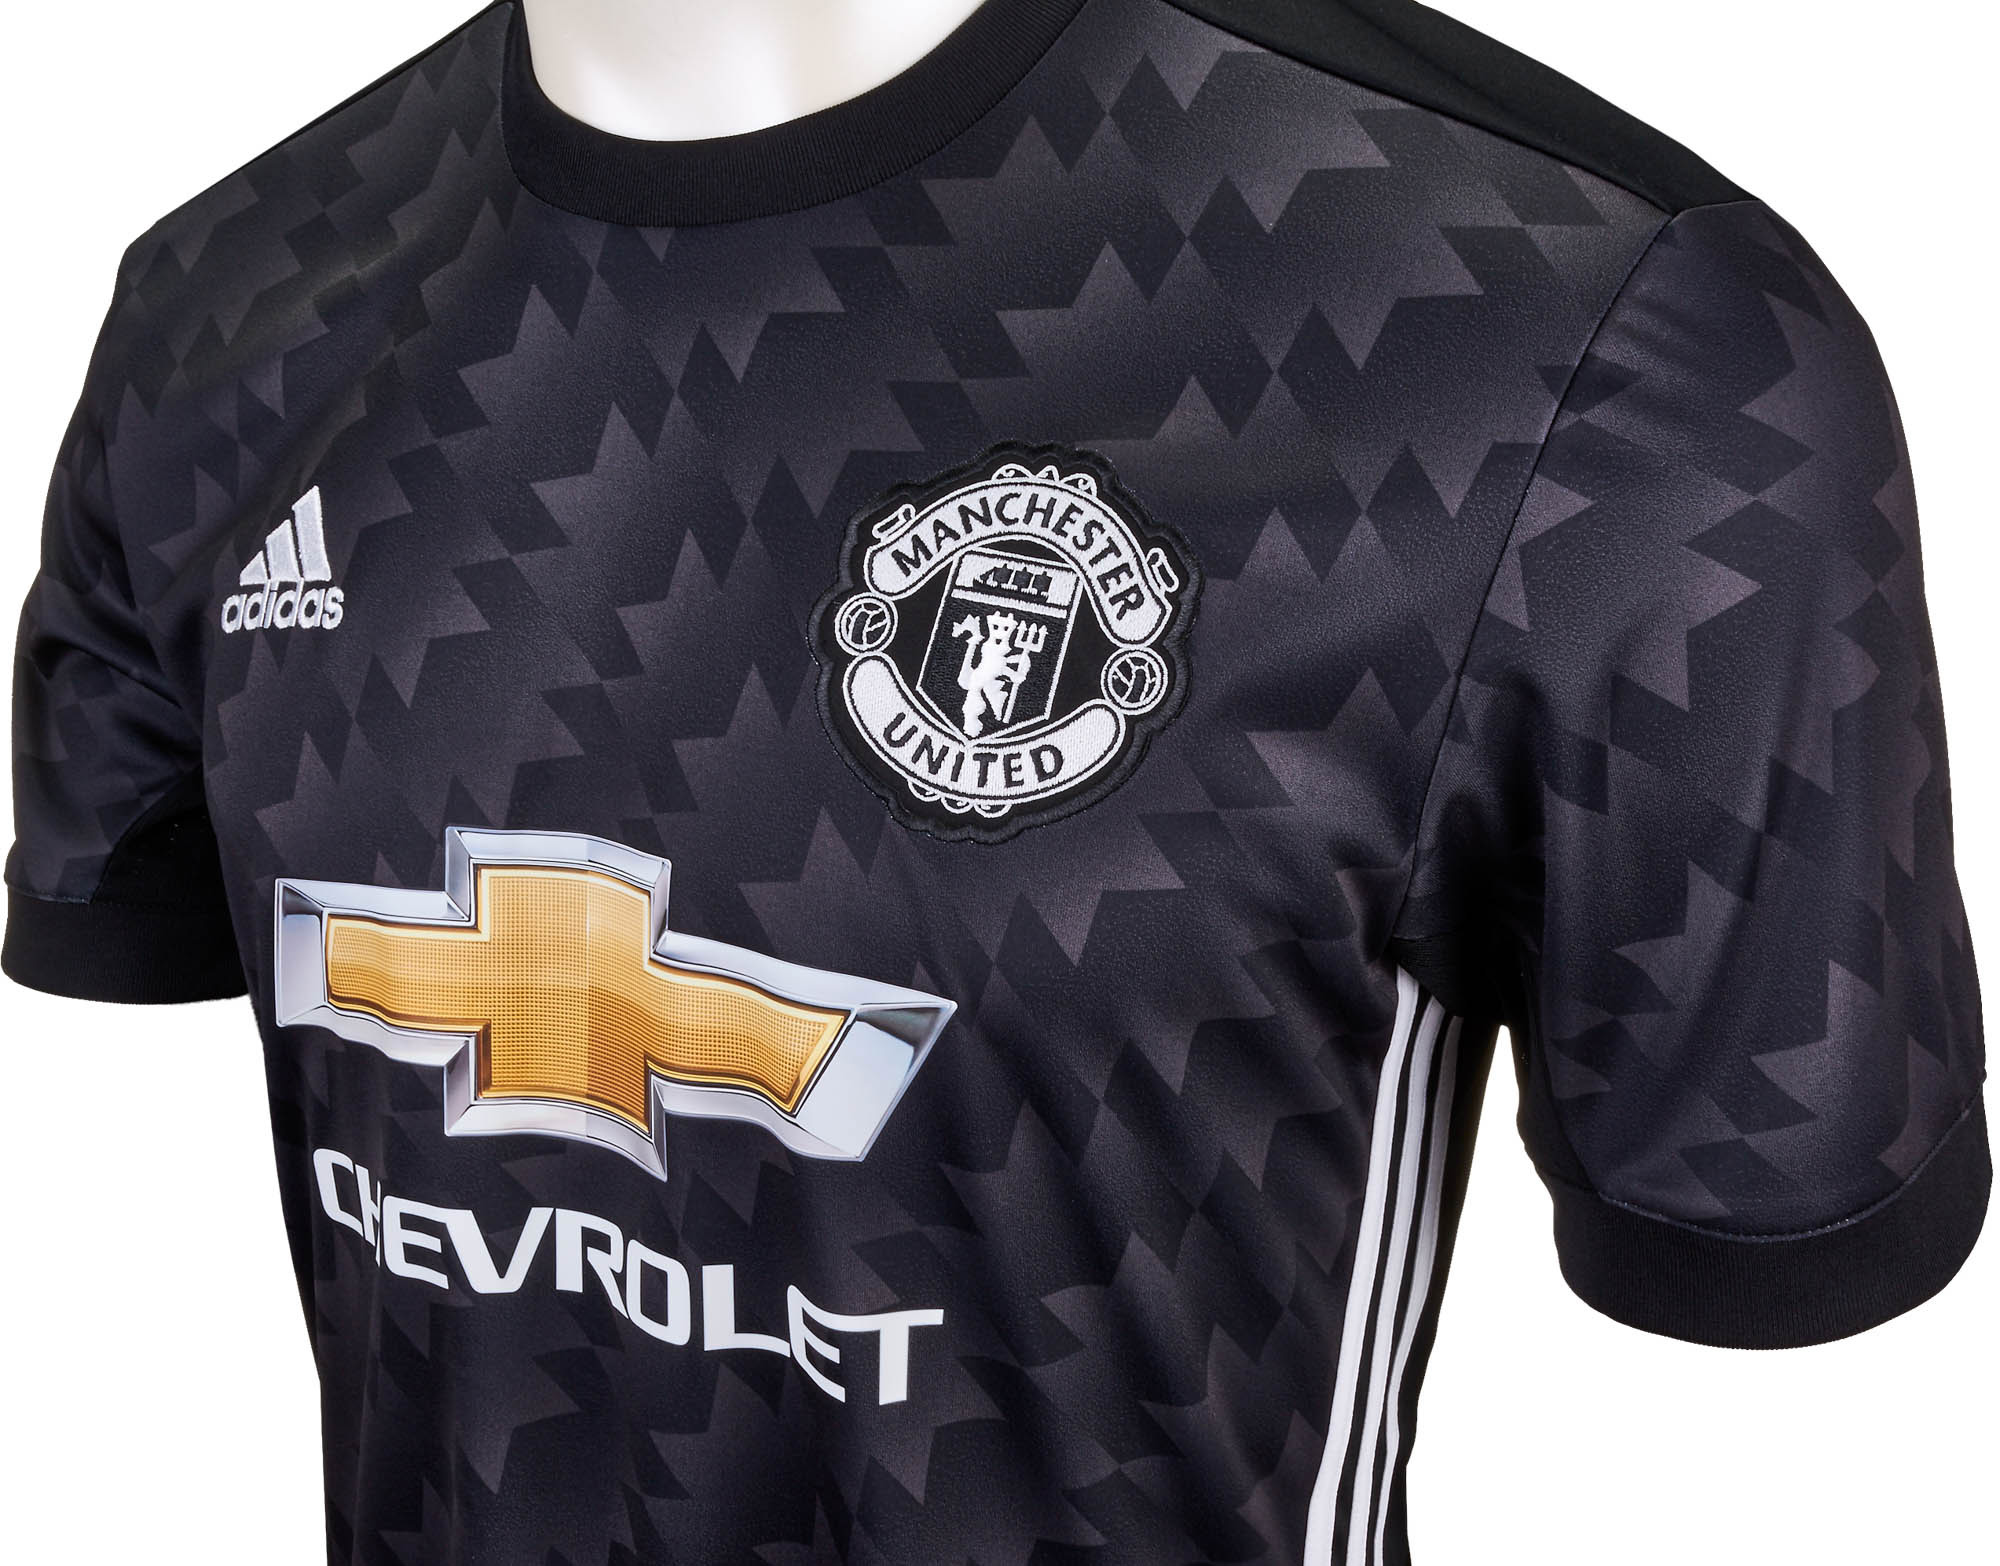 2017/18 adidas Manchester United Away Jerseys